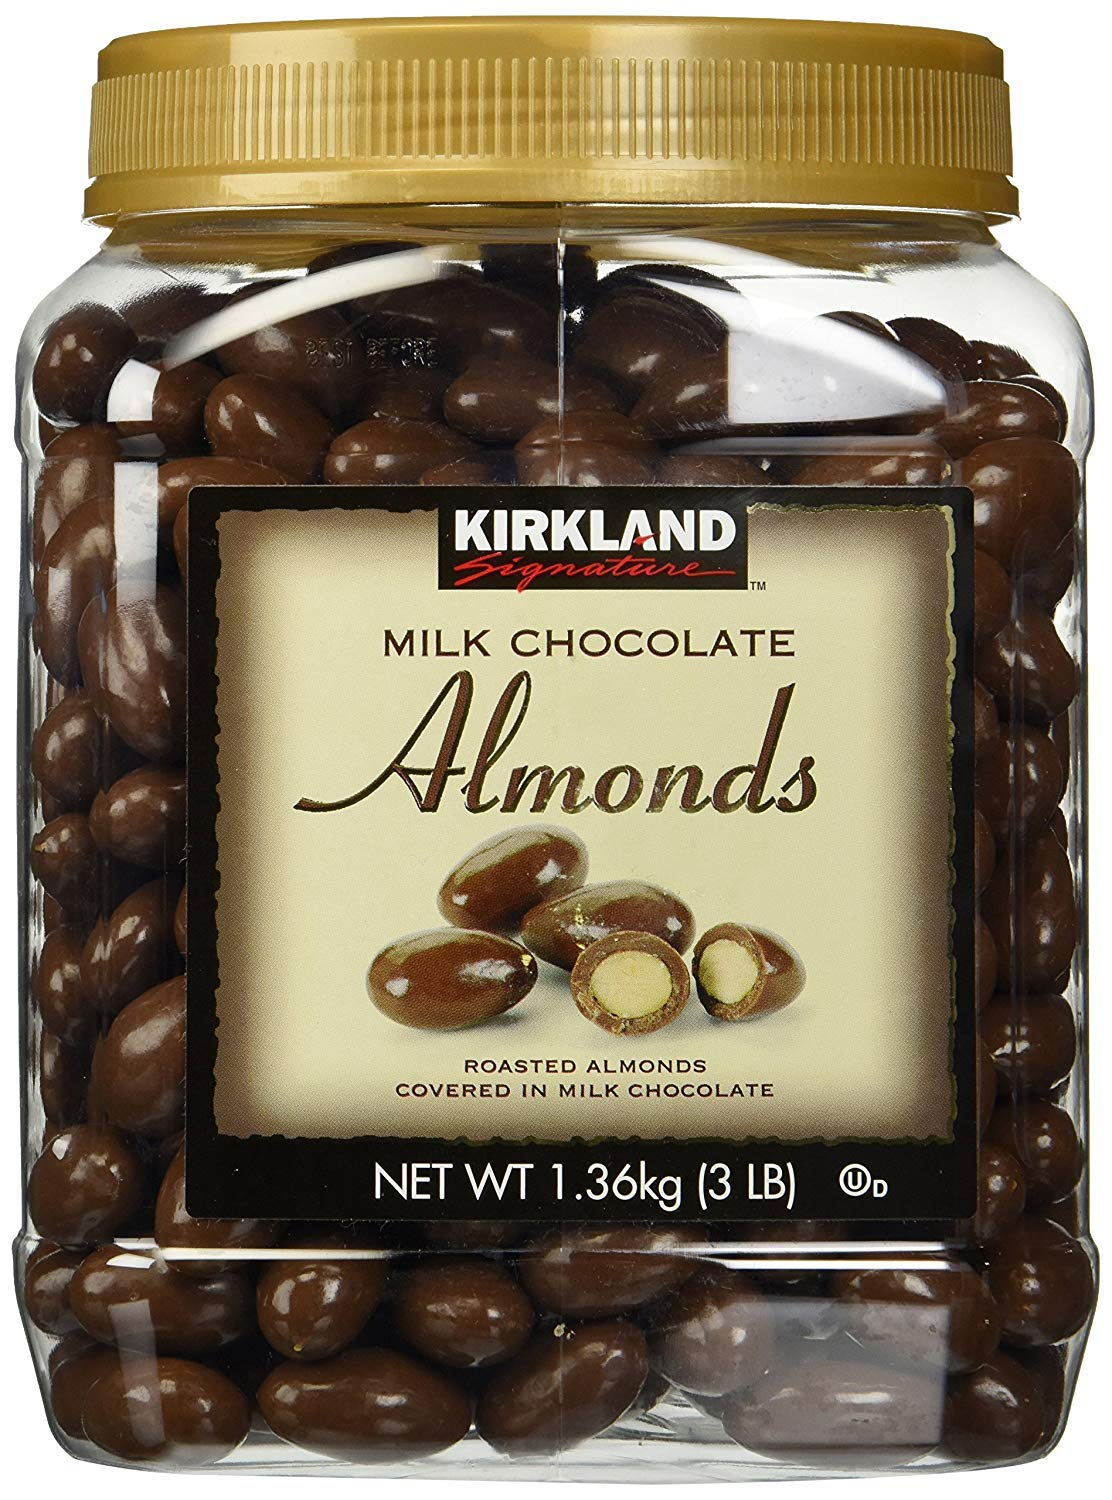 Kirkland Signature INRSC Milk Chocolate Roasted Almonds, 4 Pack 48 Ounce by Kirkland Signature